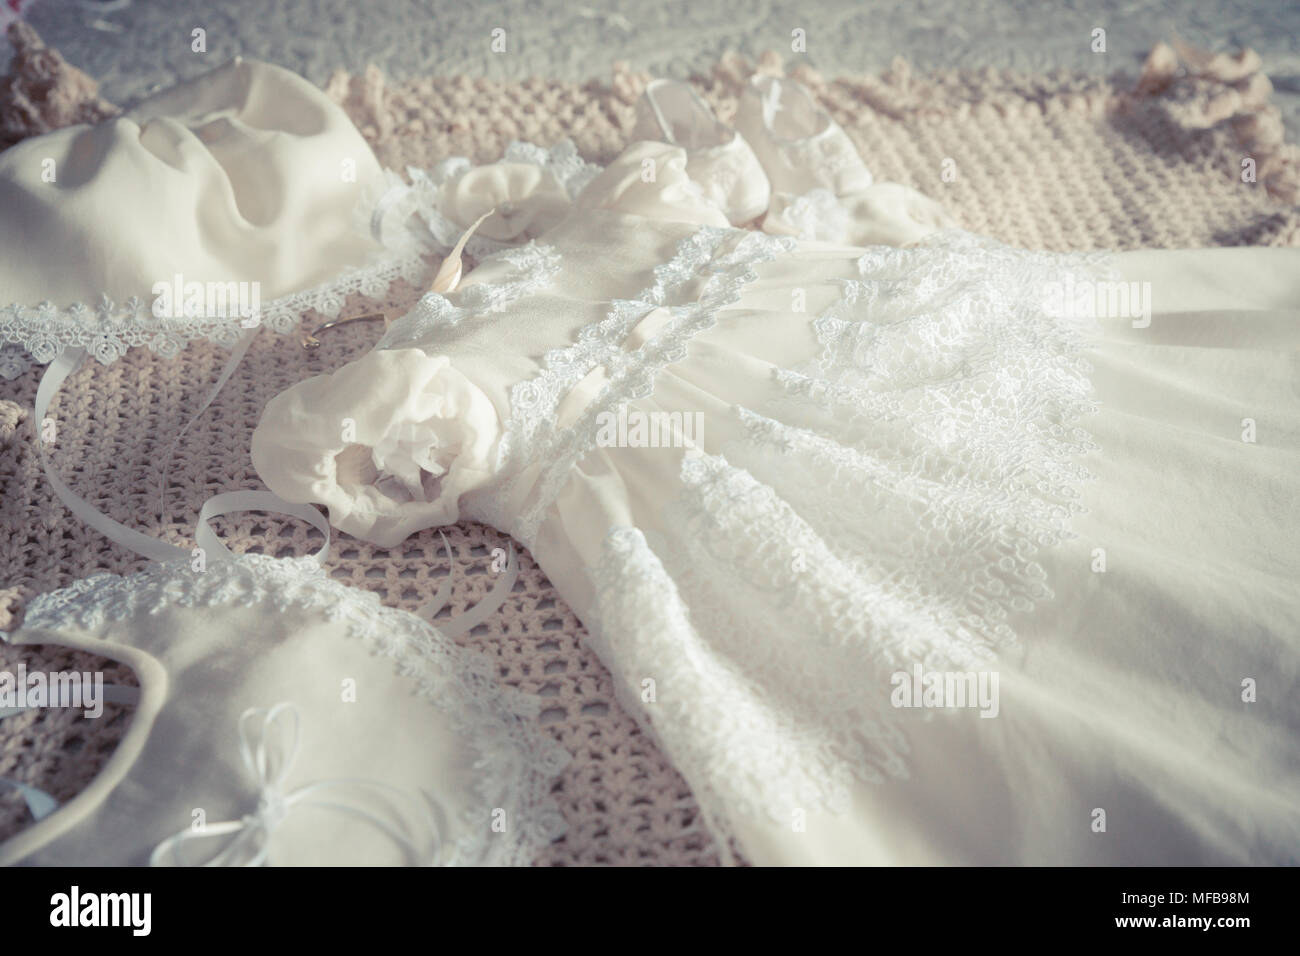 Baby girl's white lace fancy dress and accessories for Baptism christening - Stock Image